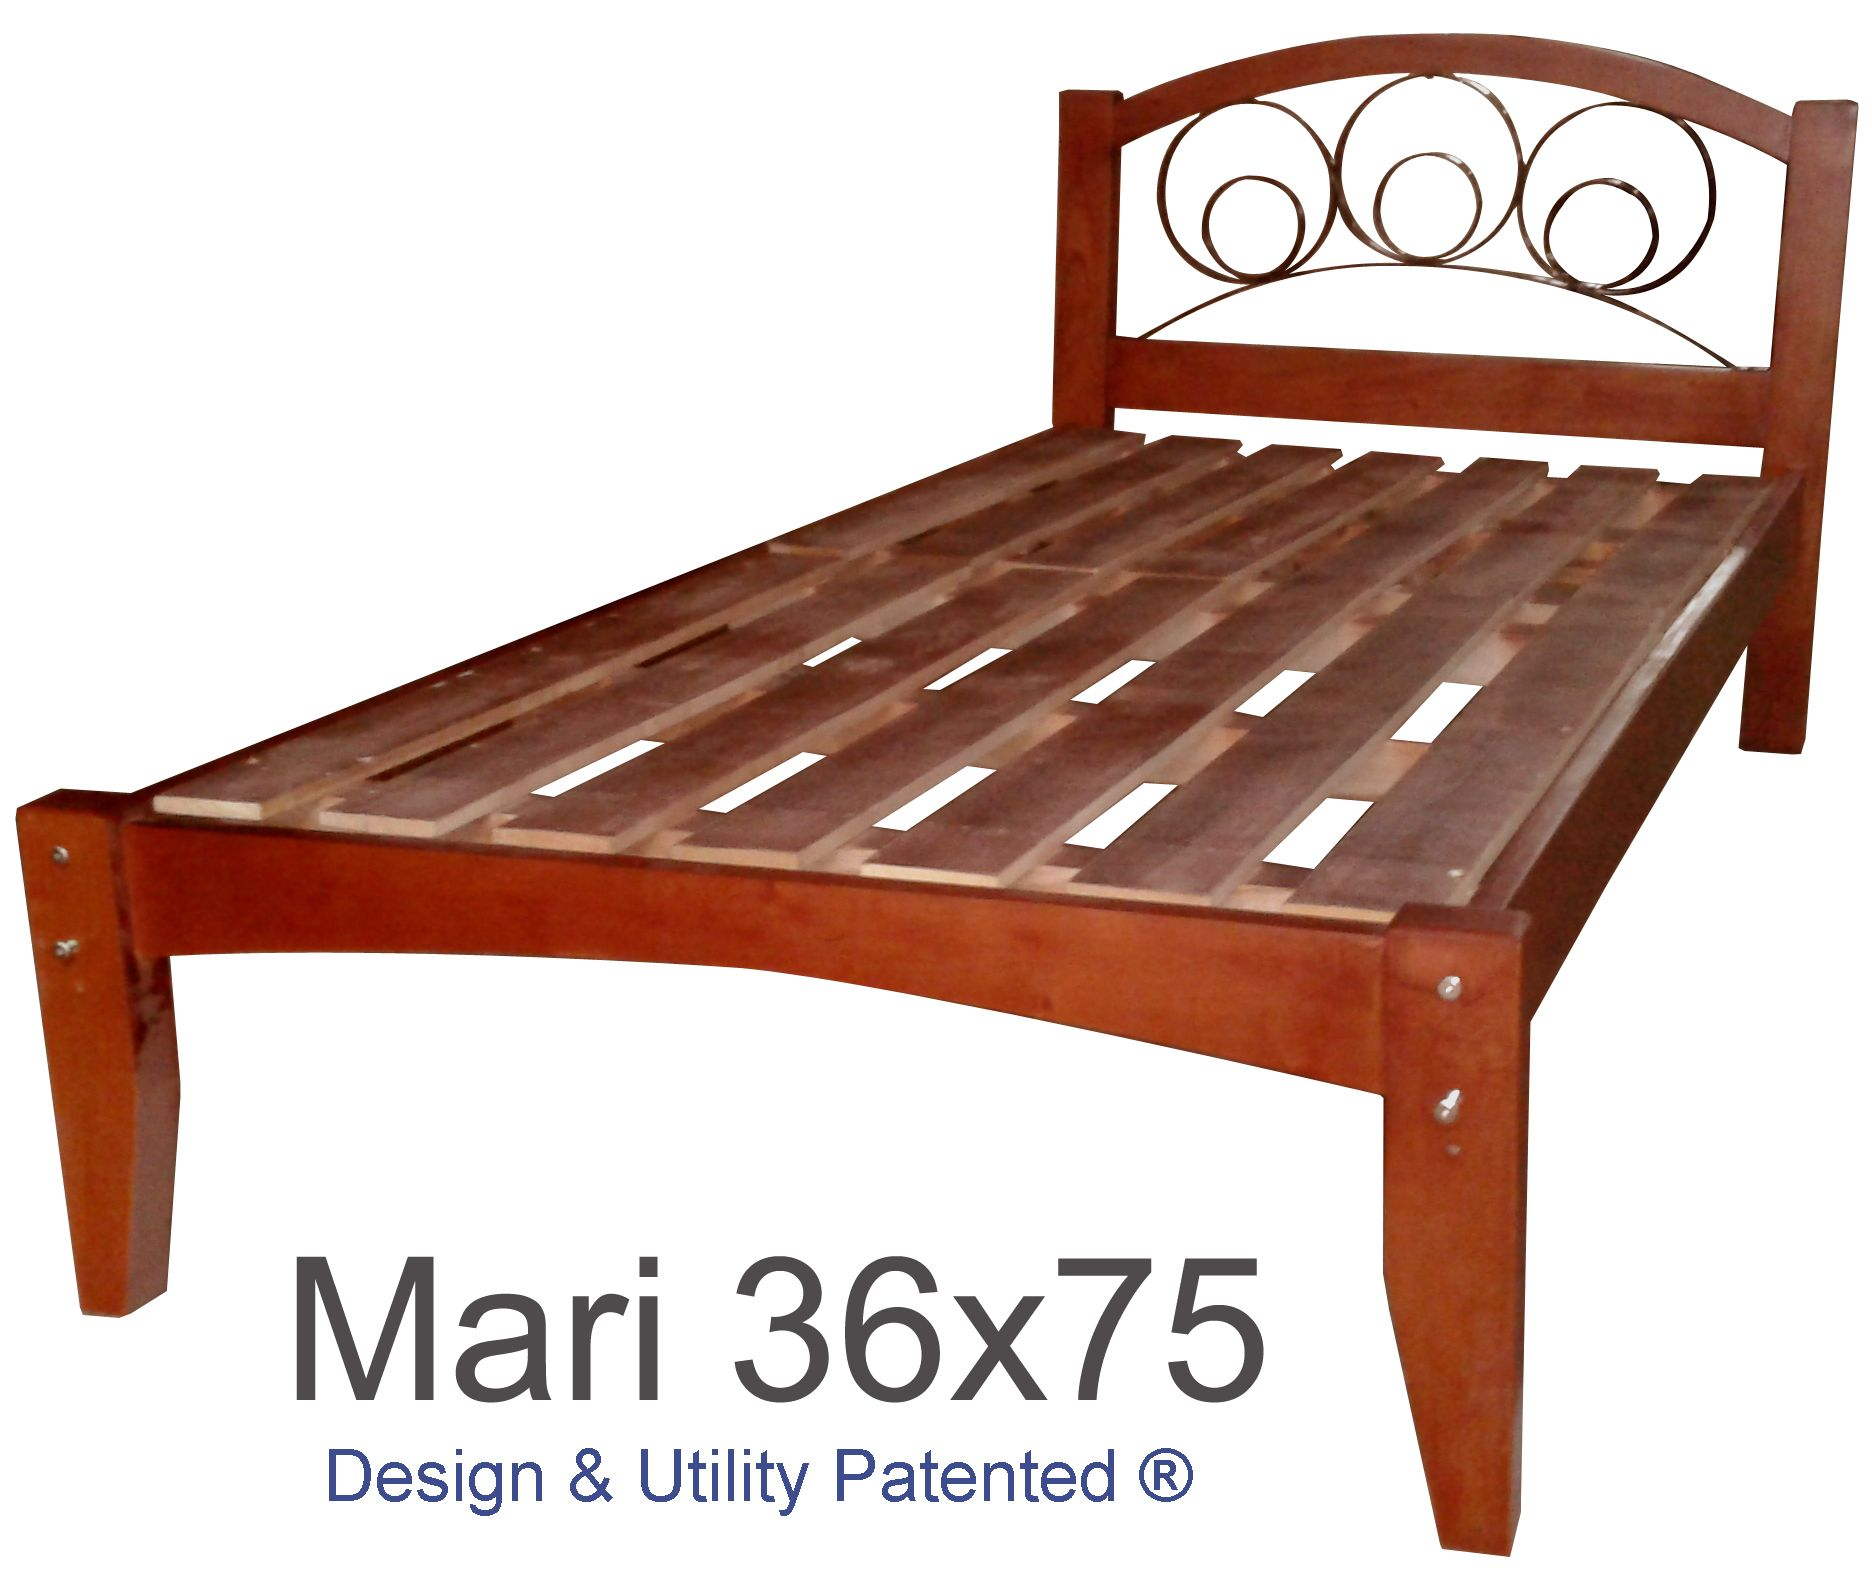 Solid Wood Bed Frame With Images Solid Wood Bed Frame Wood